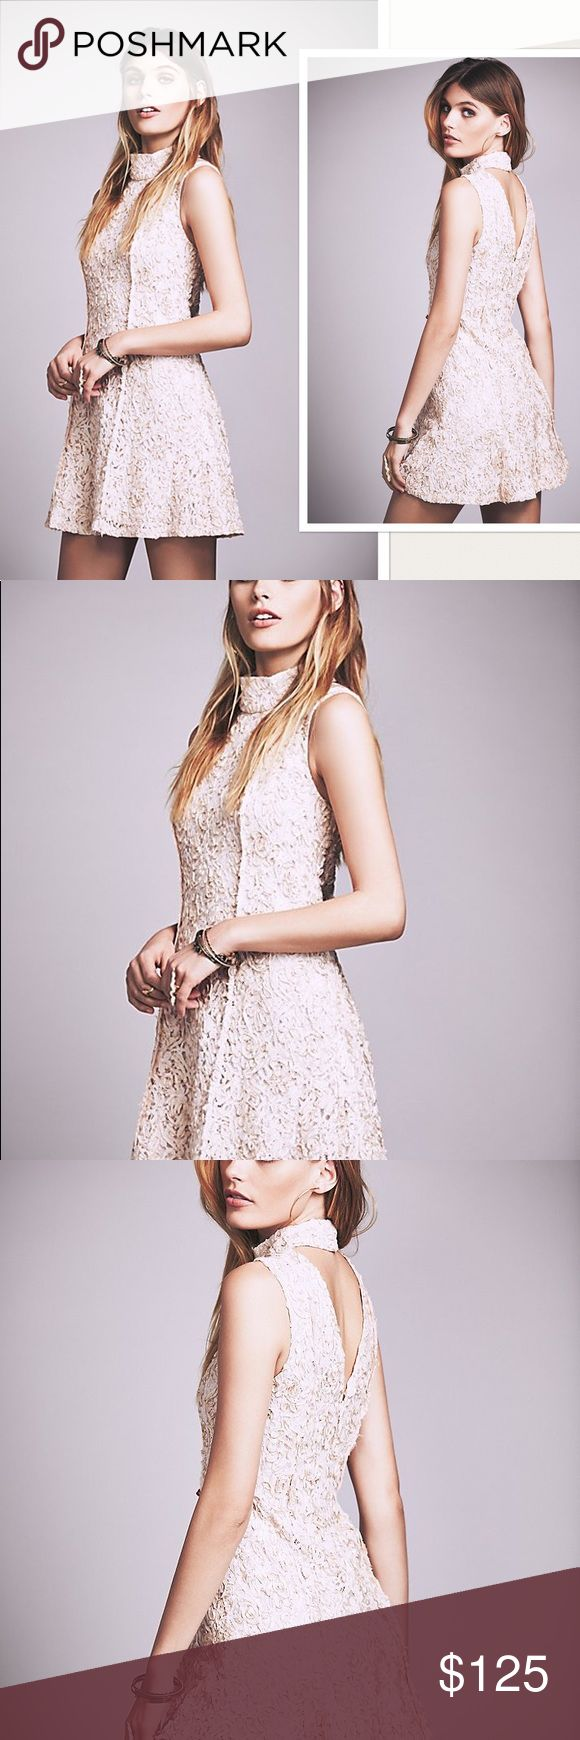 """NWT Free People Anne Mock Neck Mini Dress Embroidered lace adds texture to a sleeveless turtleneck dress constructed with seamed paneling. #115 - Cutout back with hook-and-eye closure - Concealed back zip with hook-and-eye closure - A-line silhouette - Allover embroidered lace construction - Lined Lace: 65% cotton, 35% nylon Embroidery: 100% polyester Lining: 100% polyester Color: Almond Retail: $300.00 Closure: Hidden Back Zipper Dress Length: Above Knee, Mini Total Length: 34 """" Bust…"""